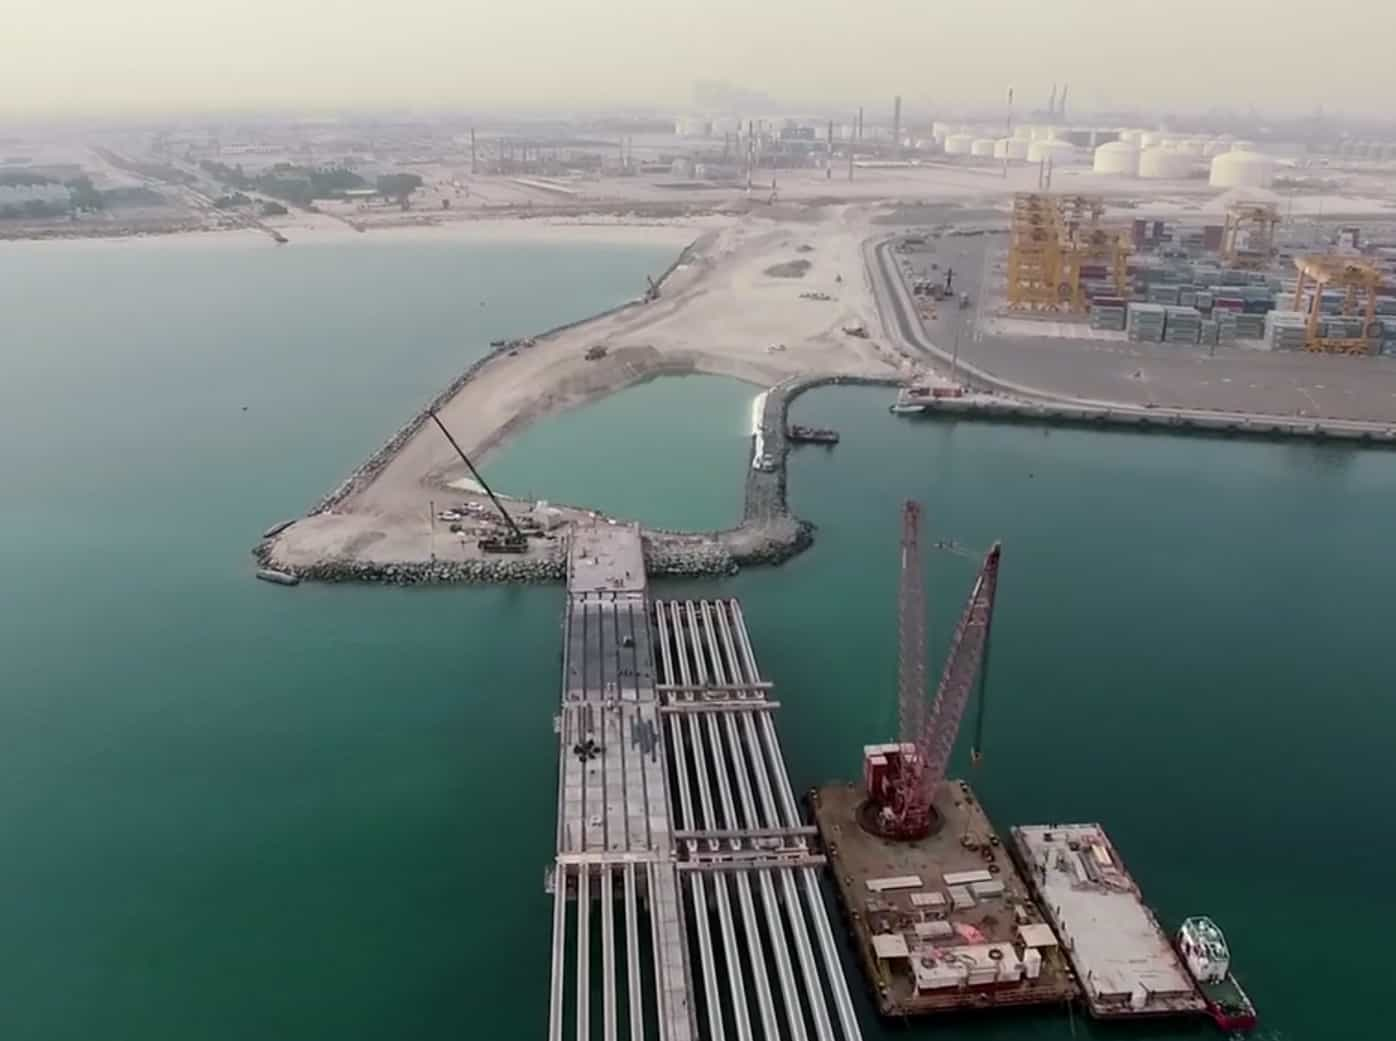 DP World signs construction contracts for Jebel Ali expansion